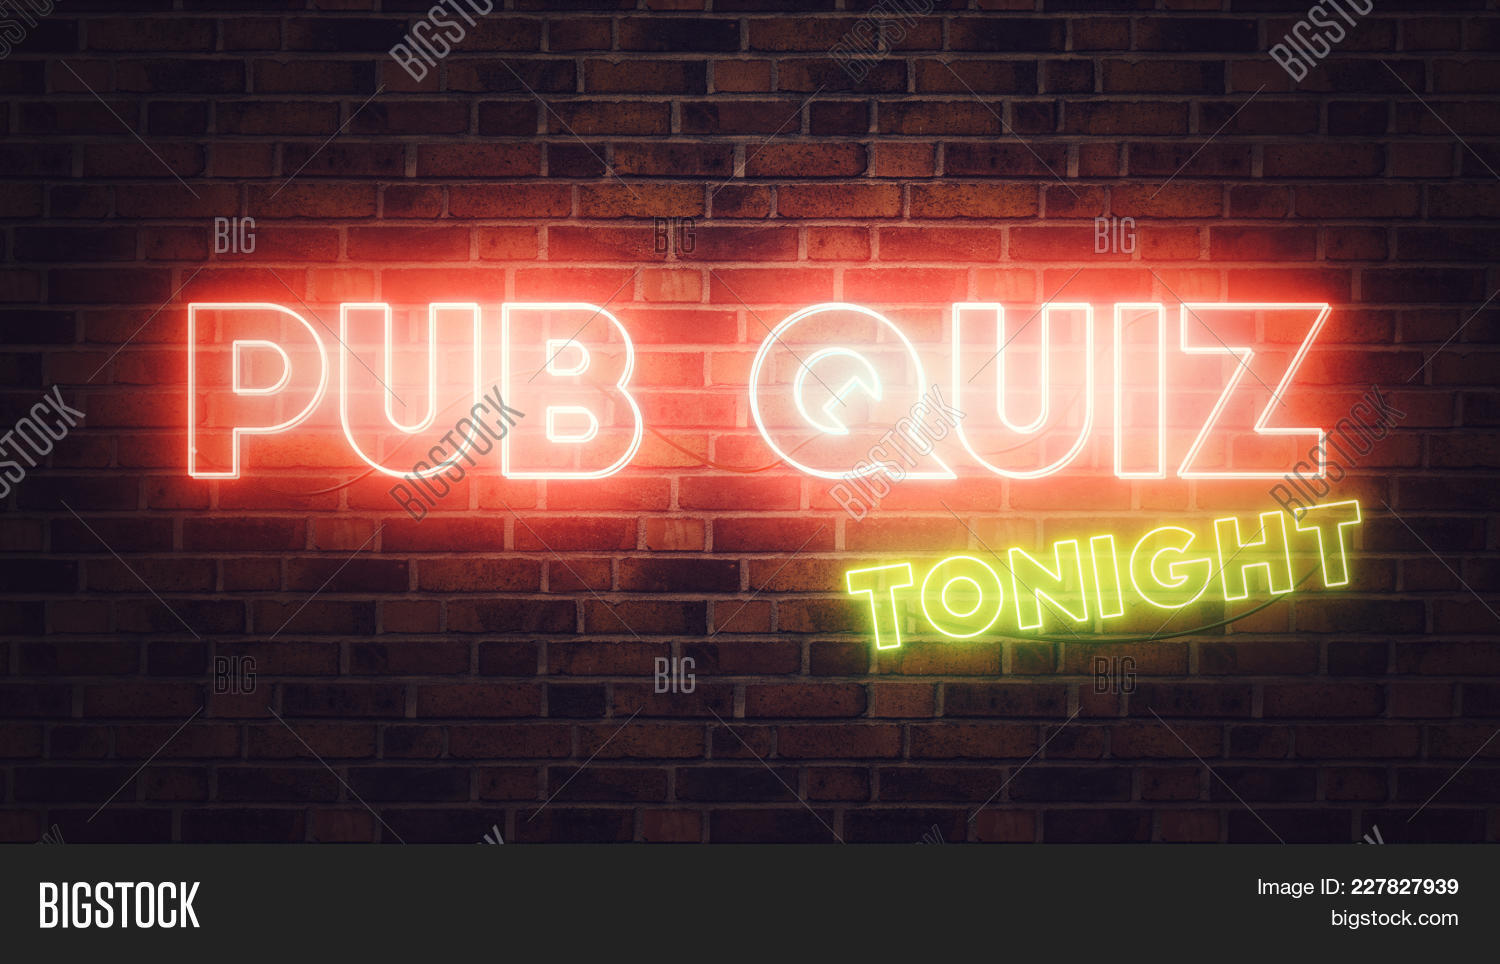 Pub quiz powerpoint template pub quiz powerpoint background your text maxwellsz